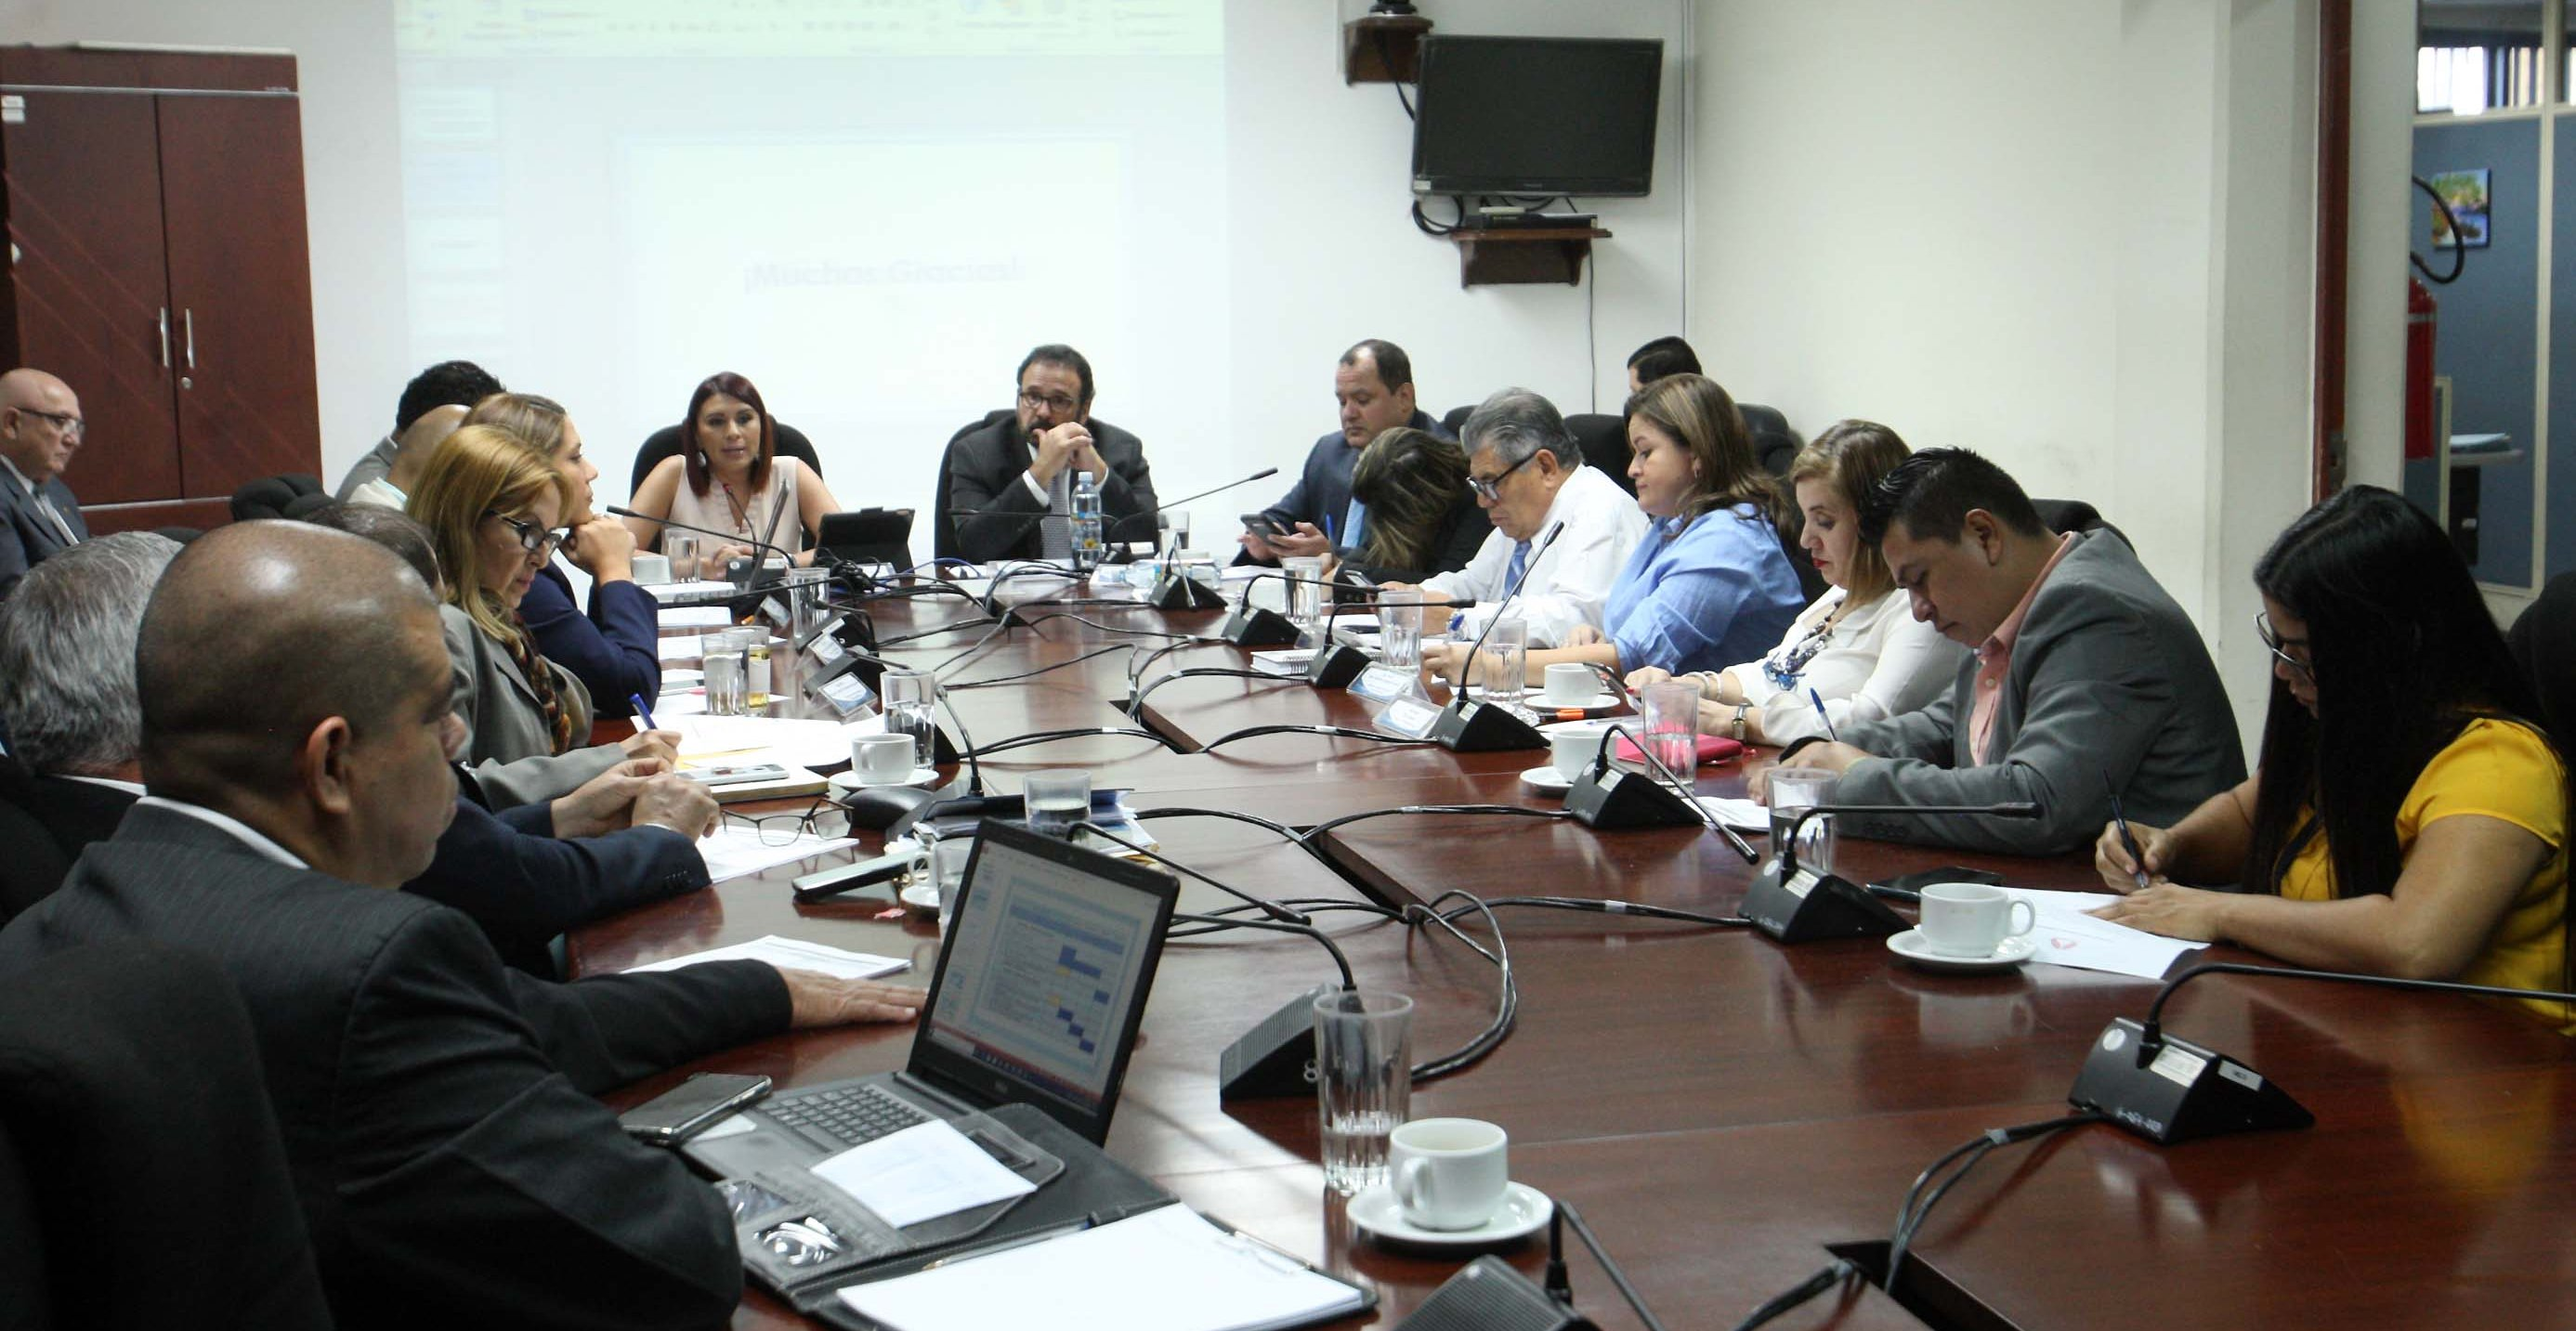 Schedule is defined that will expedite the study of the General Water Law in El Salvador